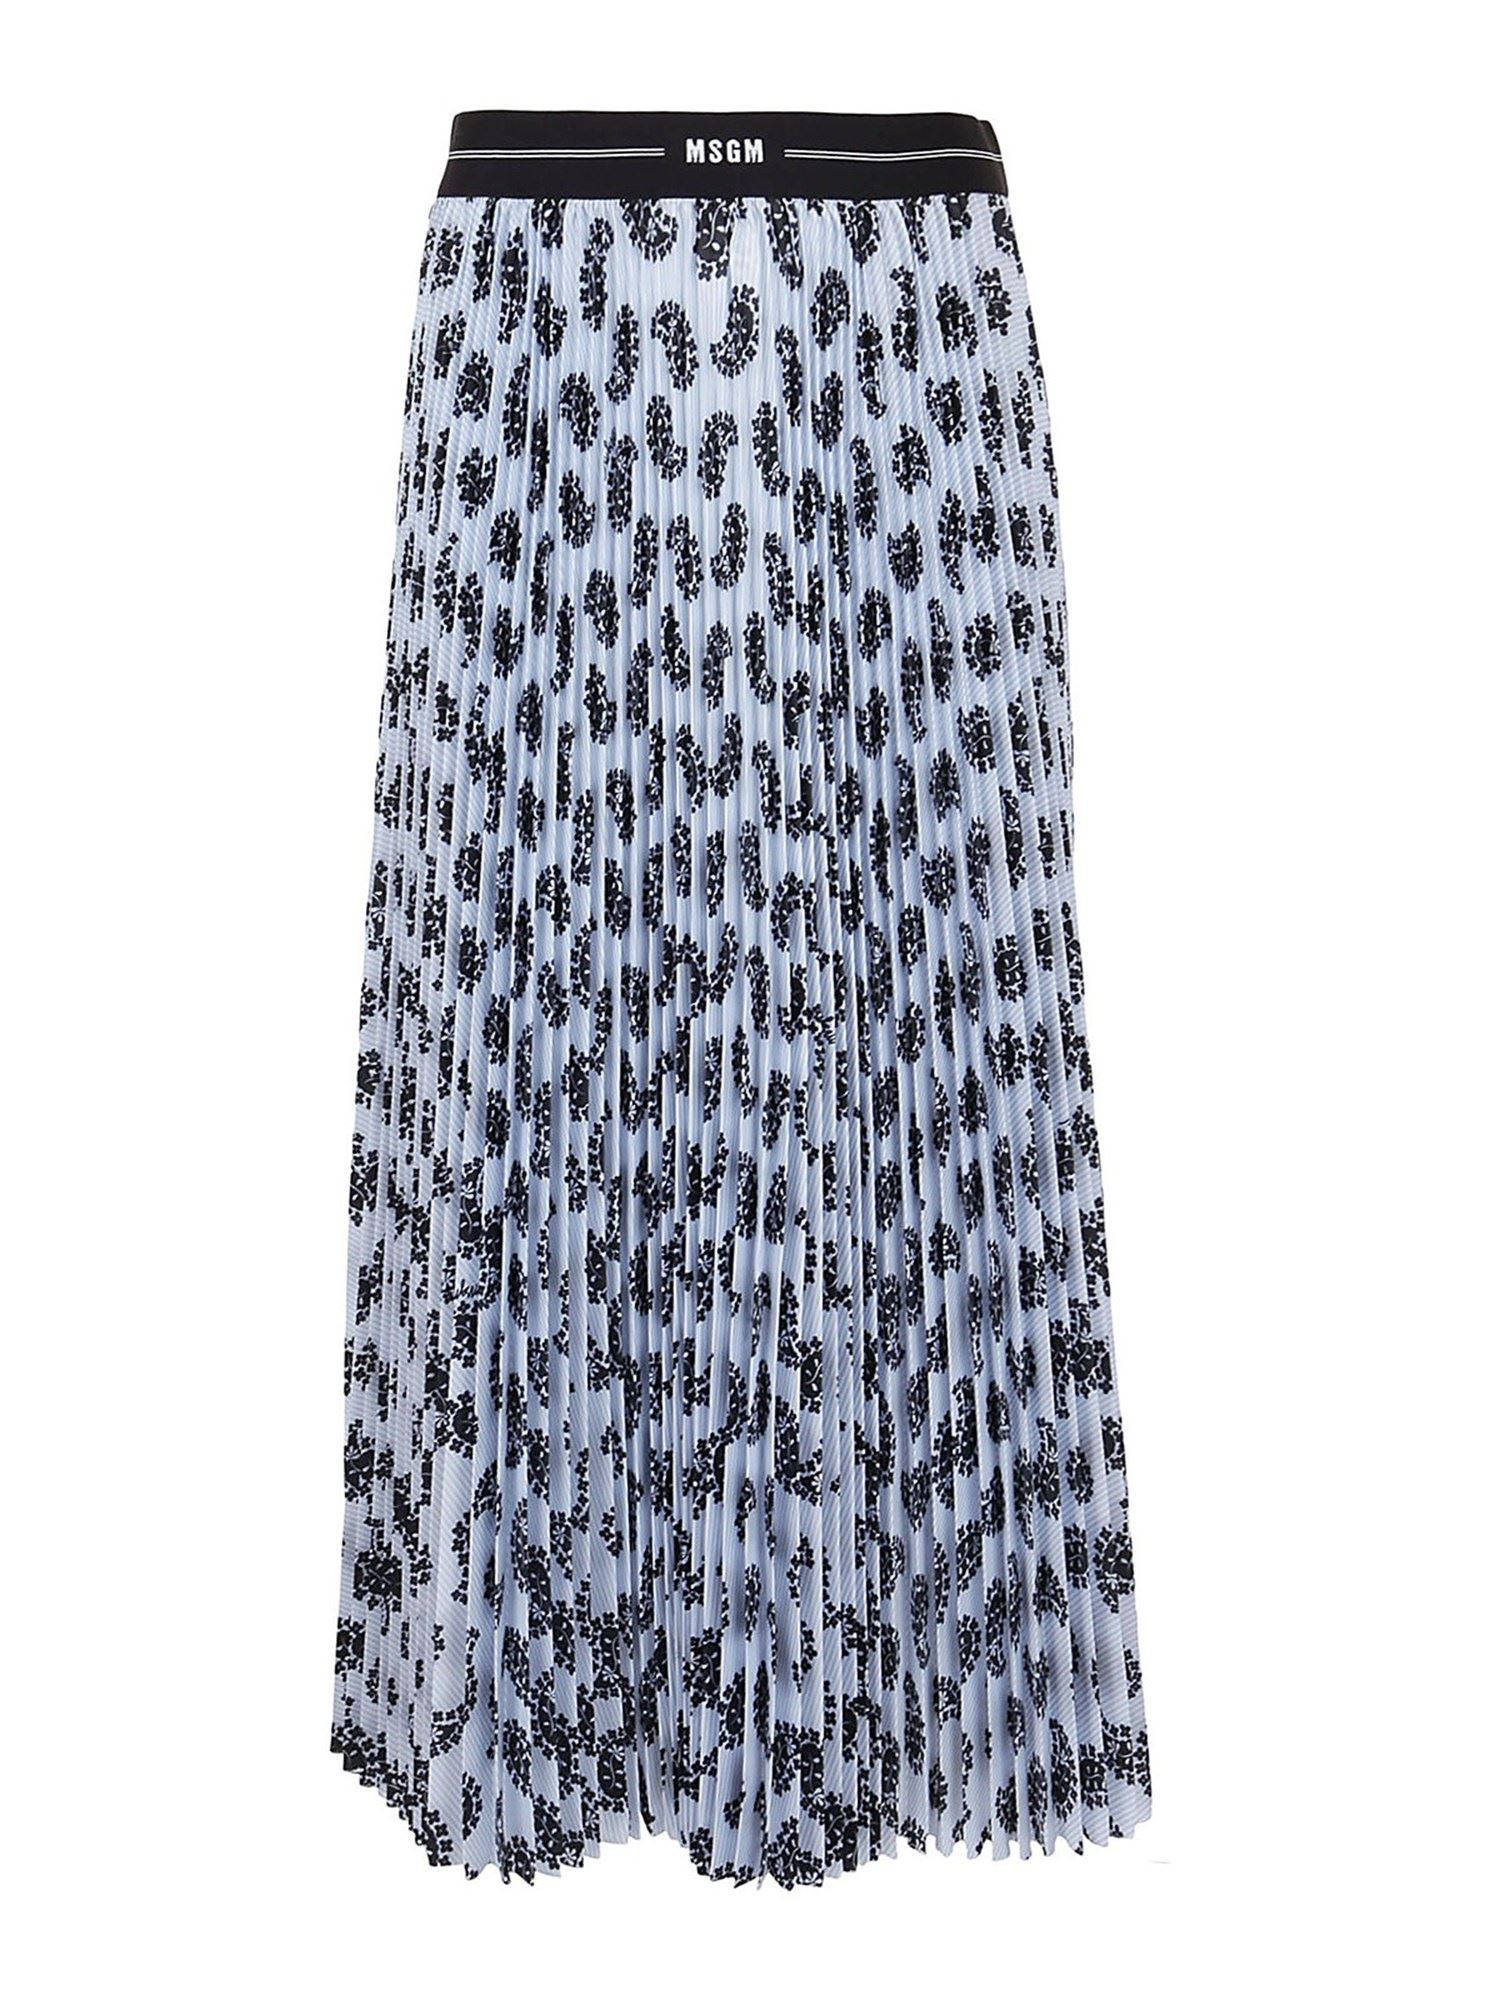 MSGM TWILL PLEATED SKIRT IN LIGHT BLUE